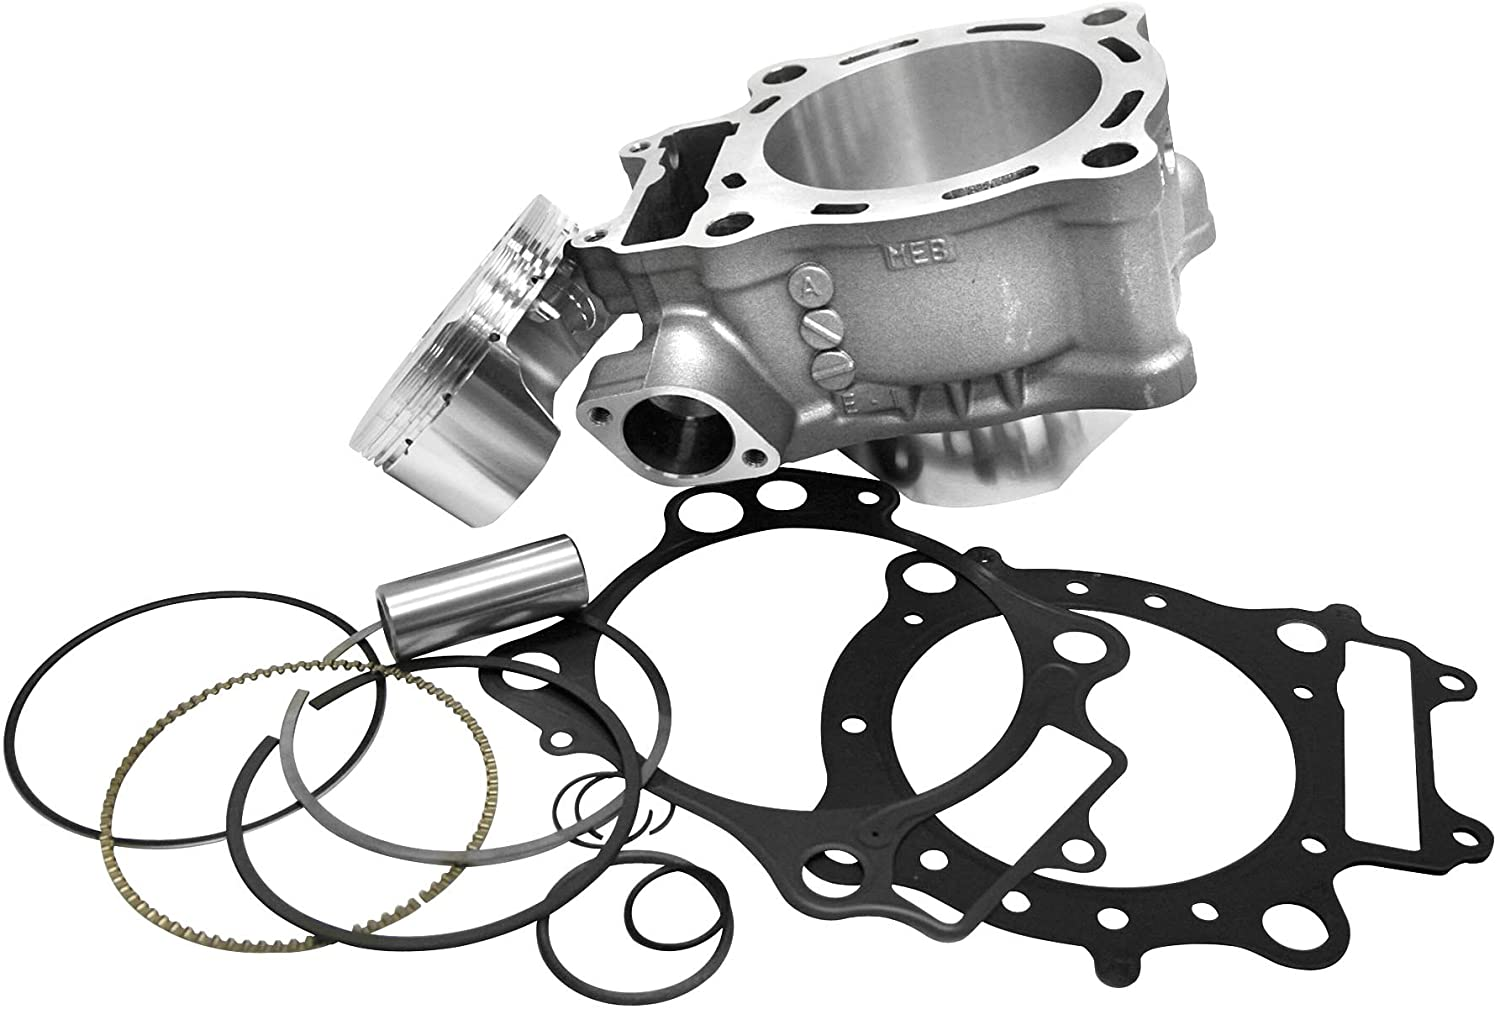 Cylinder Works 20002-K01HC Standard Bore HC Cylinder Kit - 77.00mm Bore, 13.5:1 High Compression